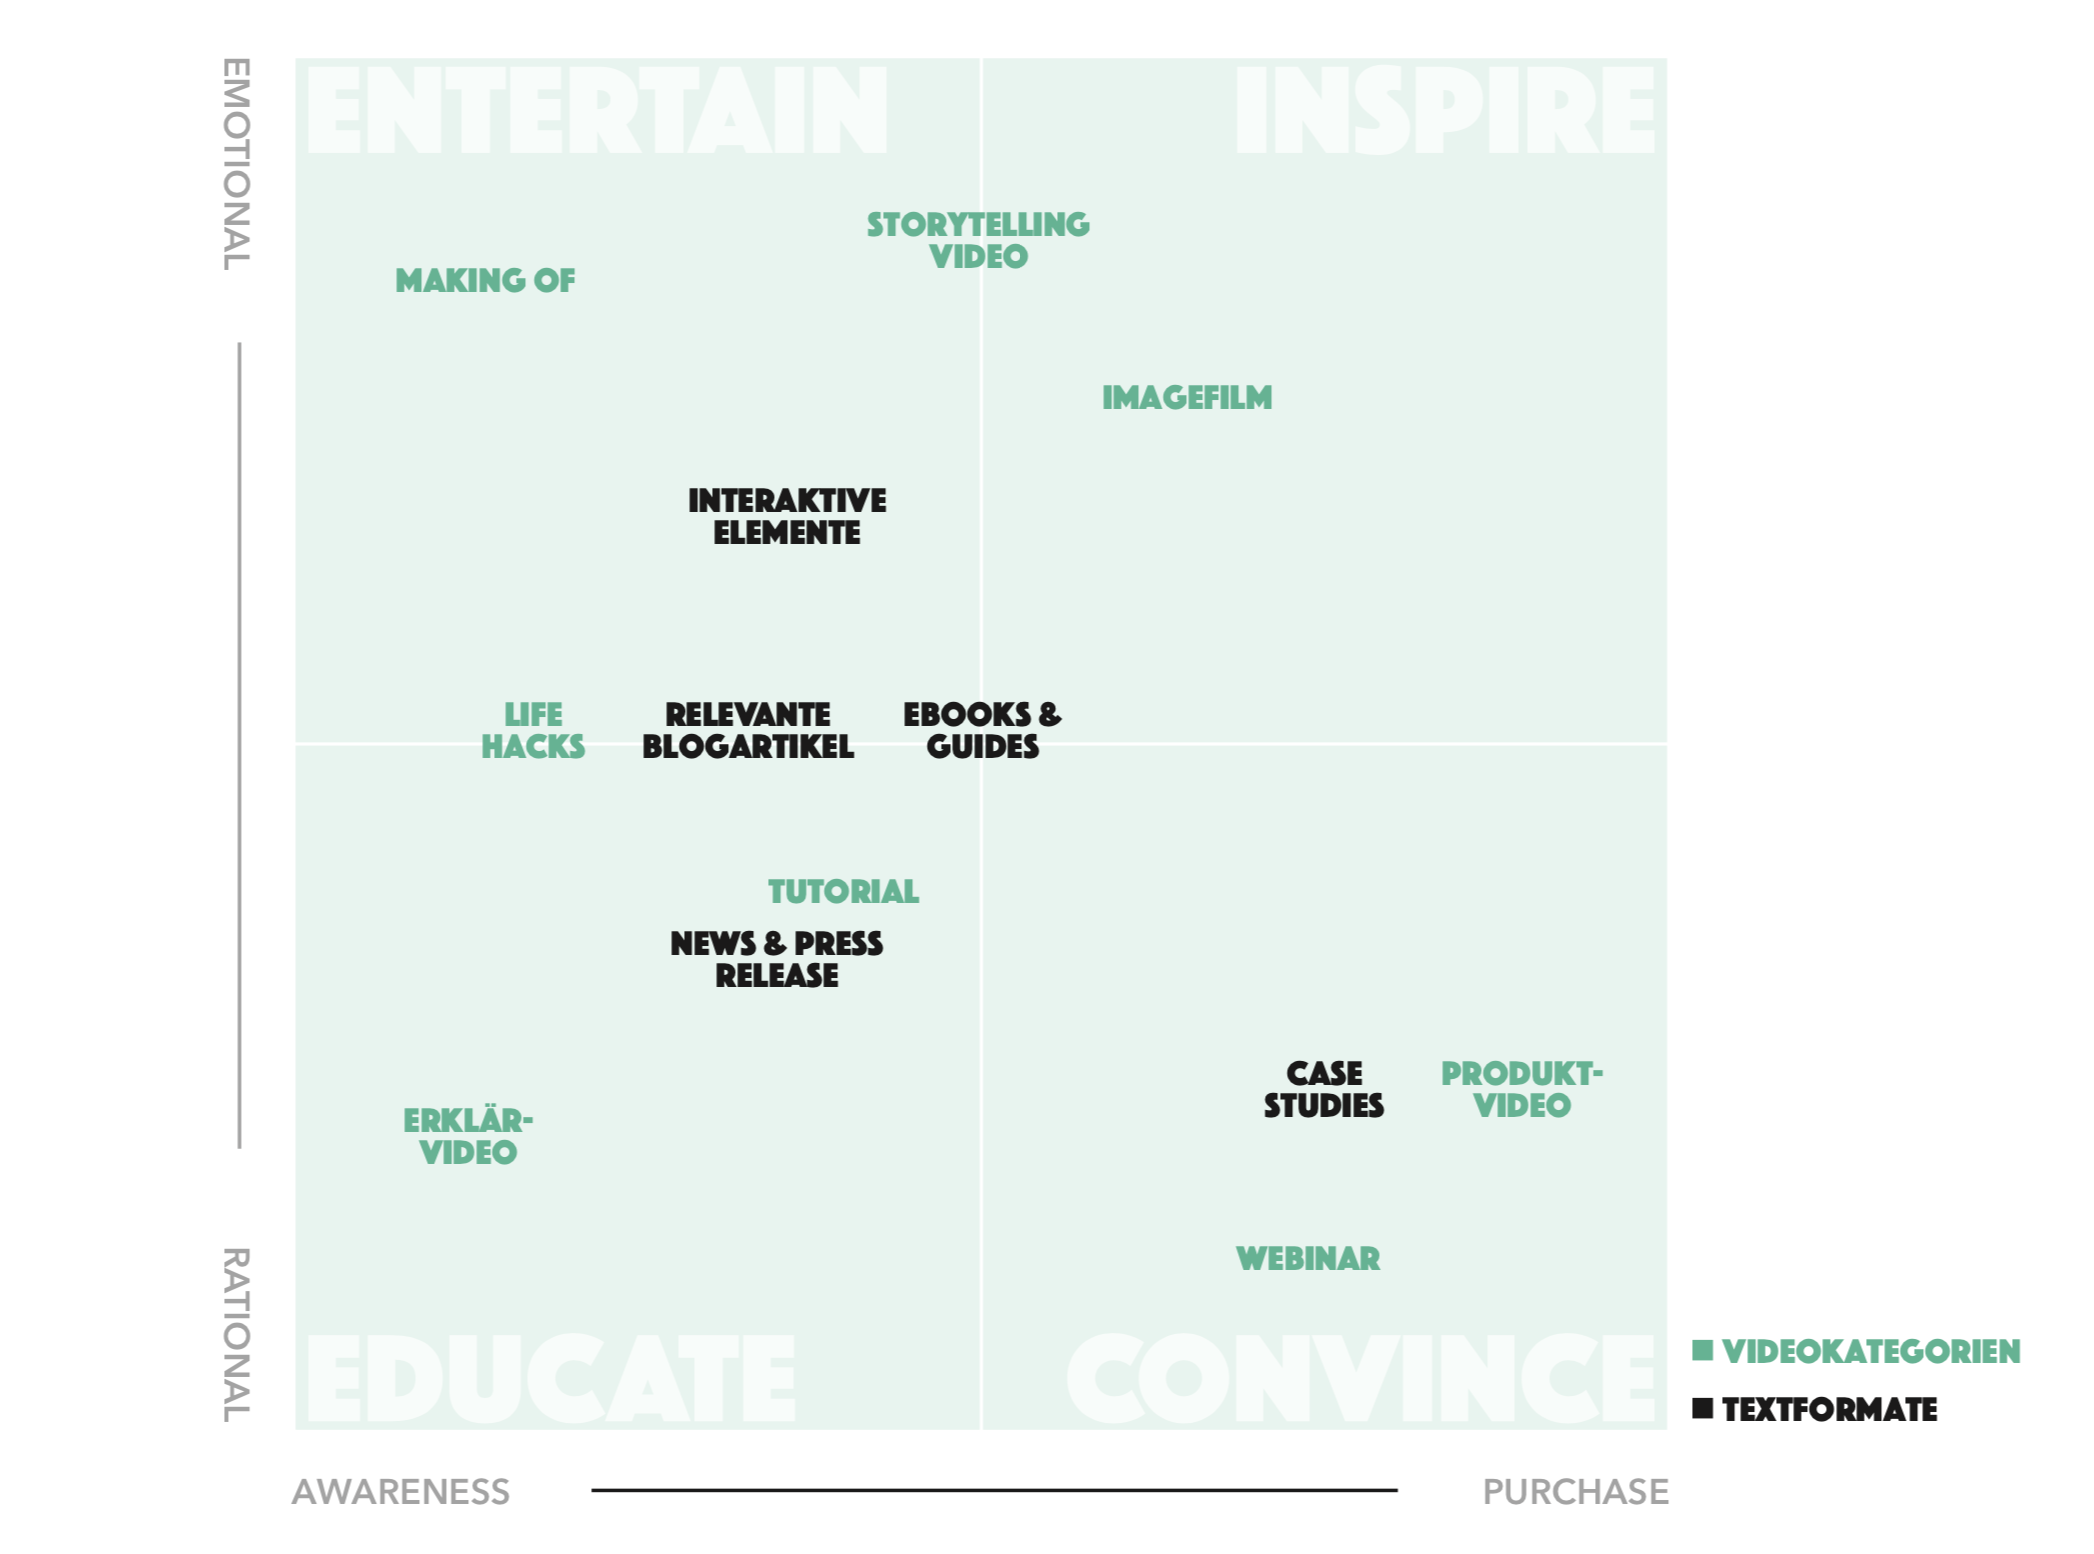 content marketing matrix formate